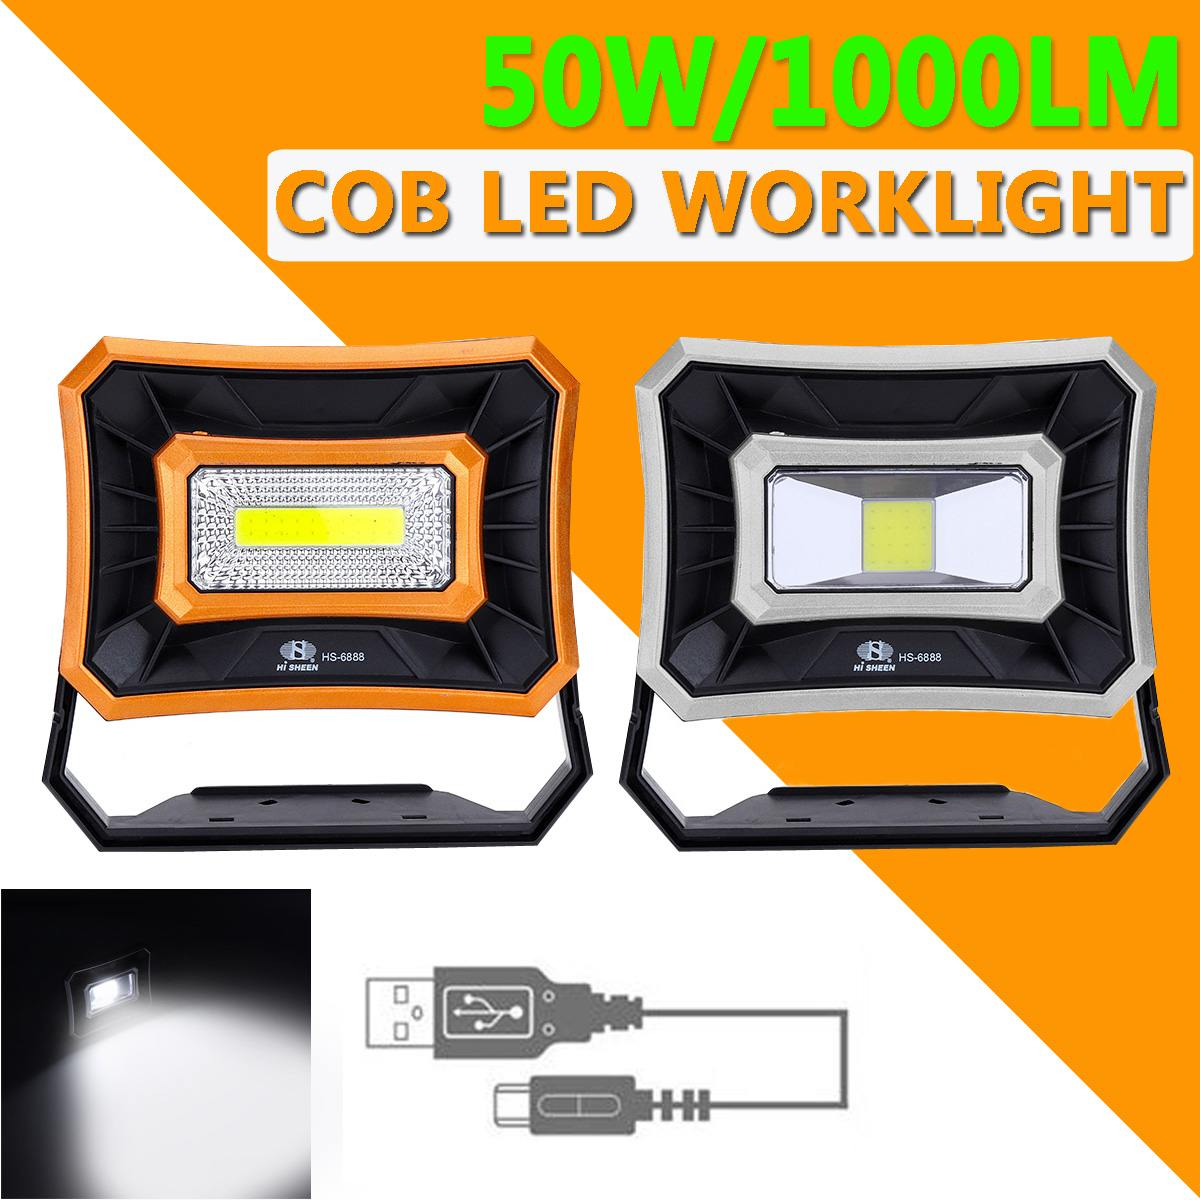 50W 1000LM LED COB Work Lamp Outdoor Camping Light USB Rechargeable Spotlight